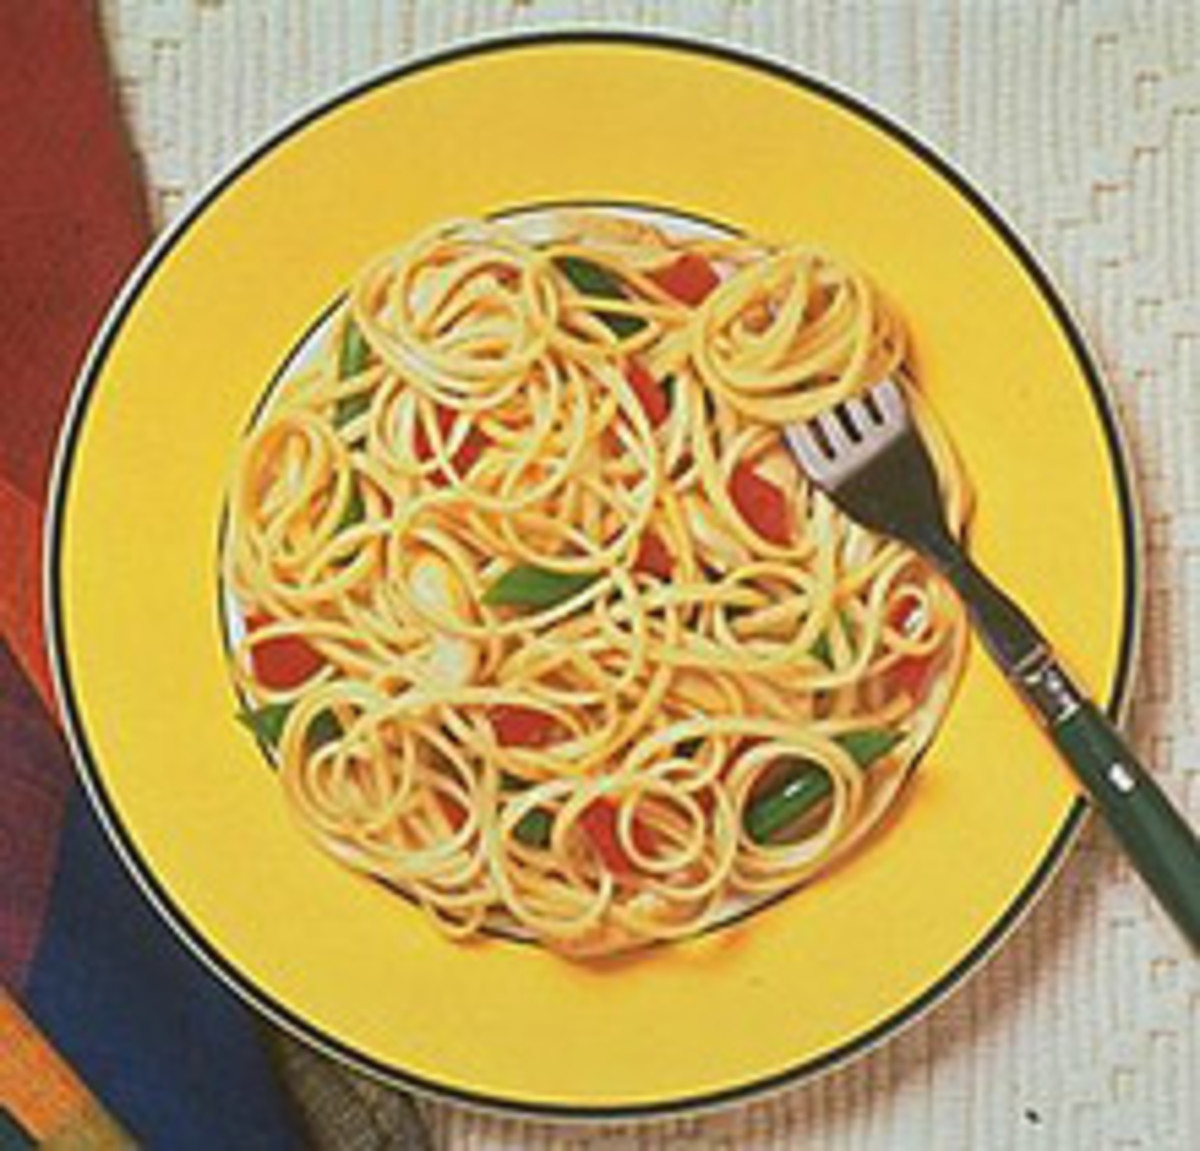 Linguine with Grilled Vegetables and Herb Bread Crumbs